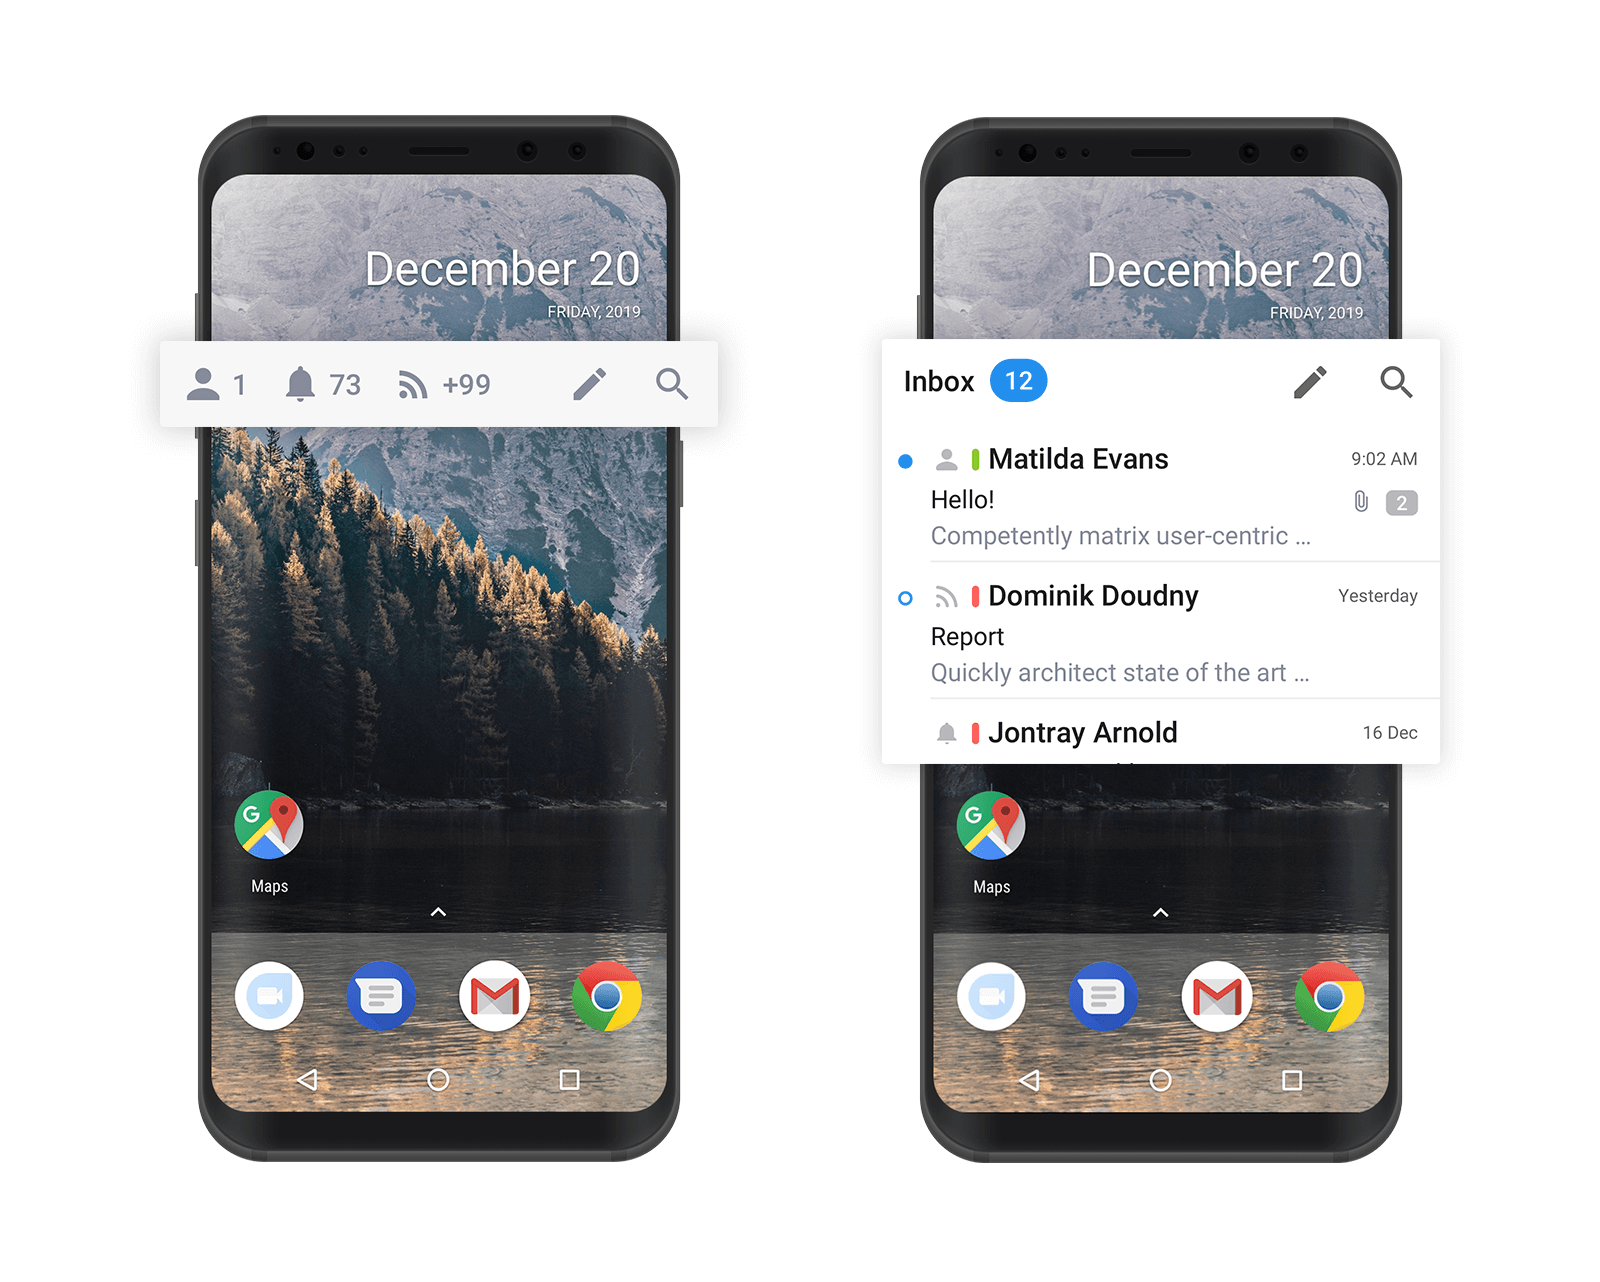 Home screen widgets in Spark